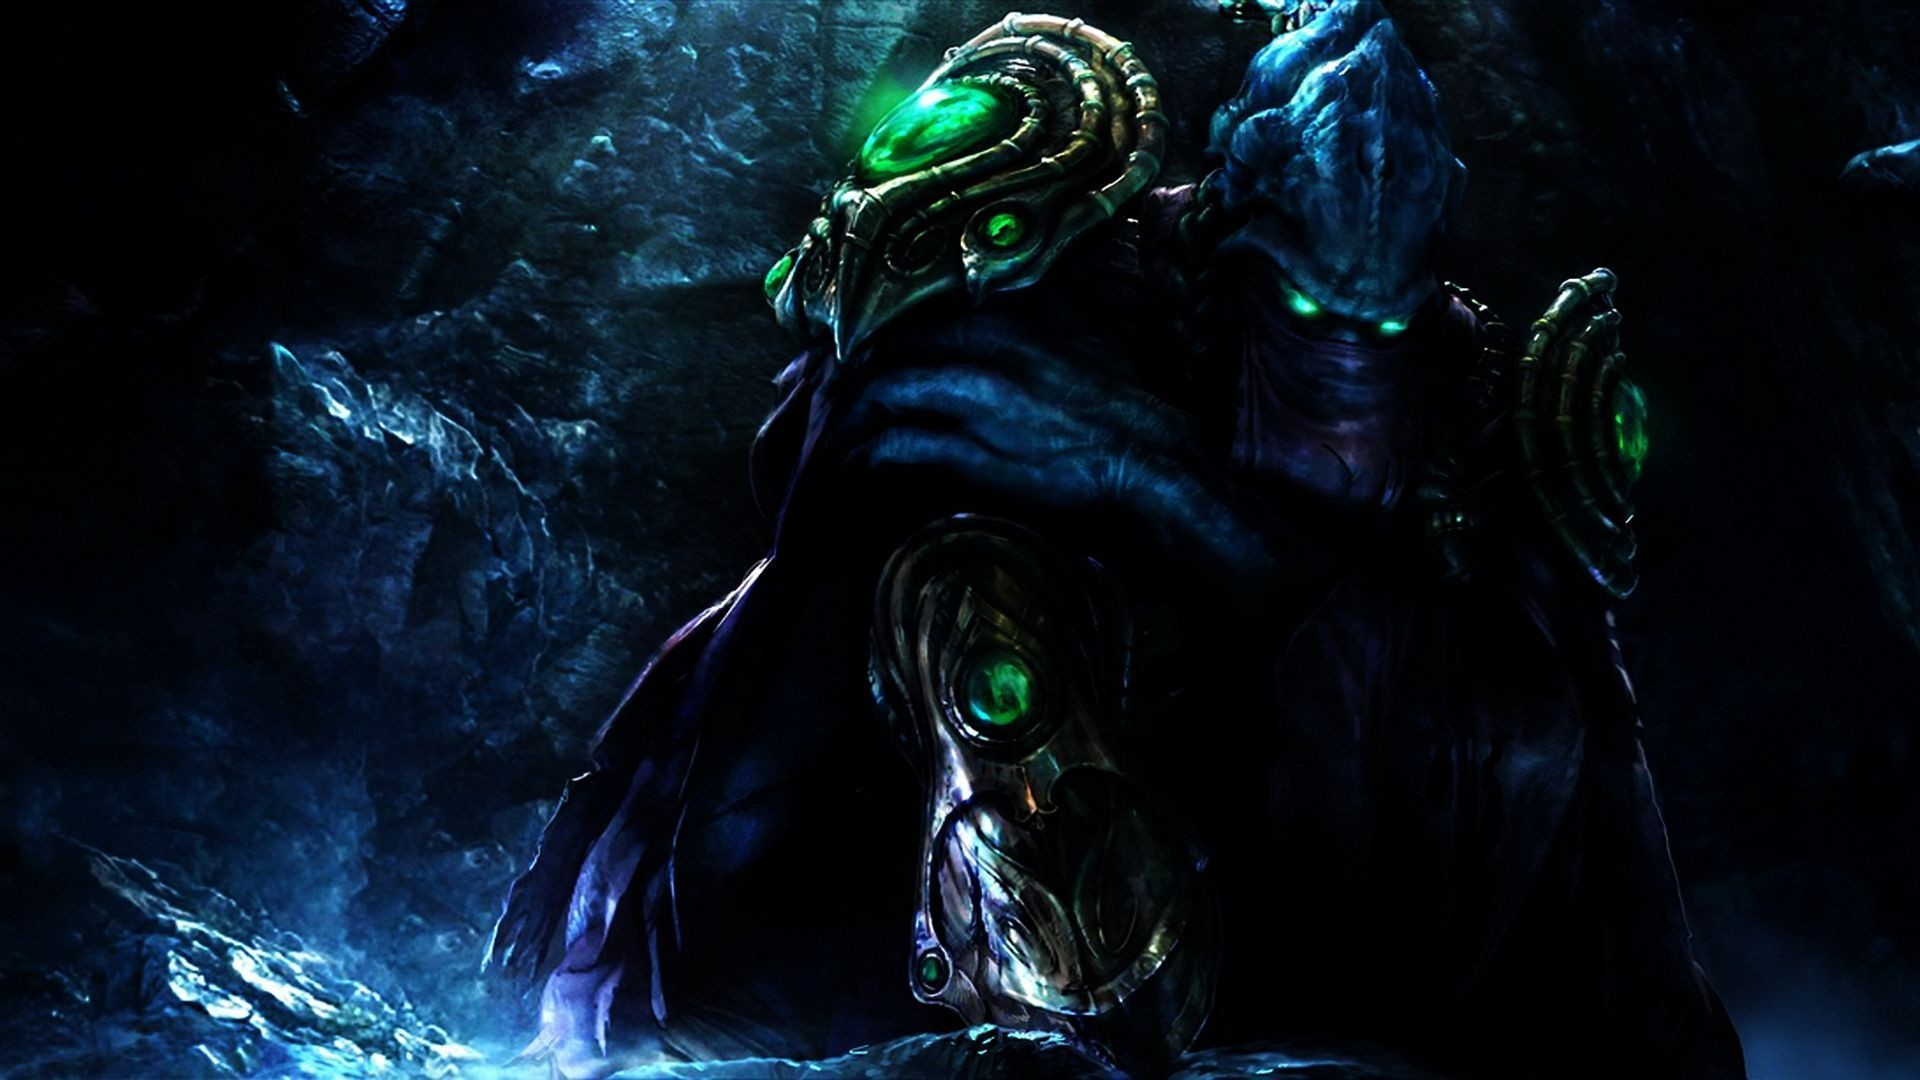 Starcraft 2, game, artwork, wings, HD Wallpaper and FREE .